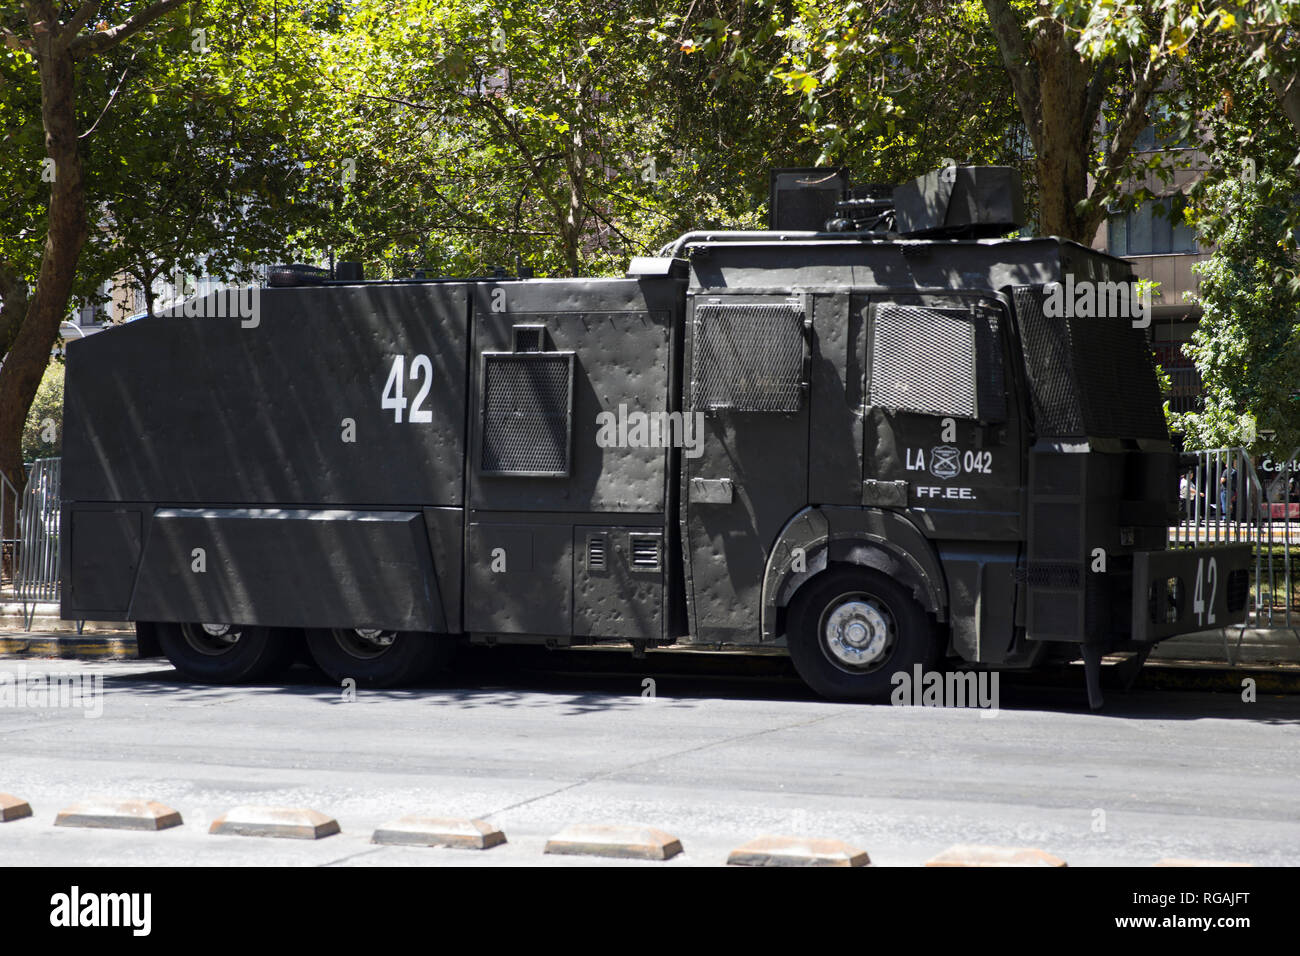 Water cannon truck Mercedes-Benz Rosenbauer RWD-12200 Guanaco of Carabiniers on the street of Santiago de Chile - Stock Image